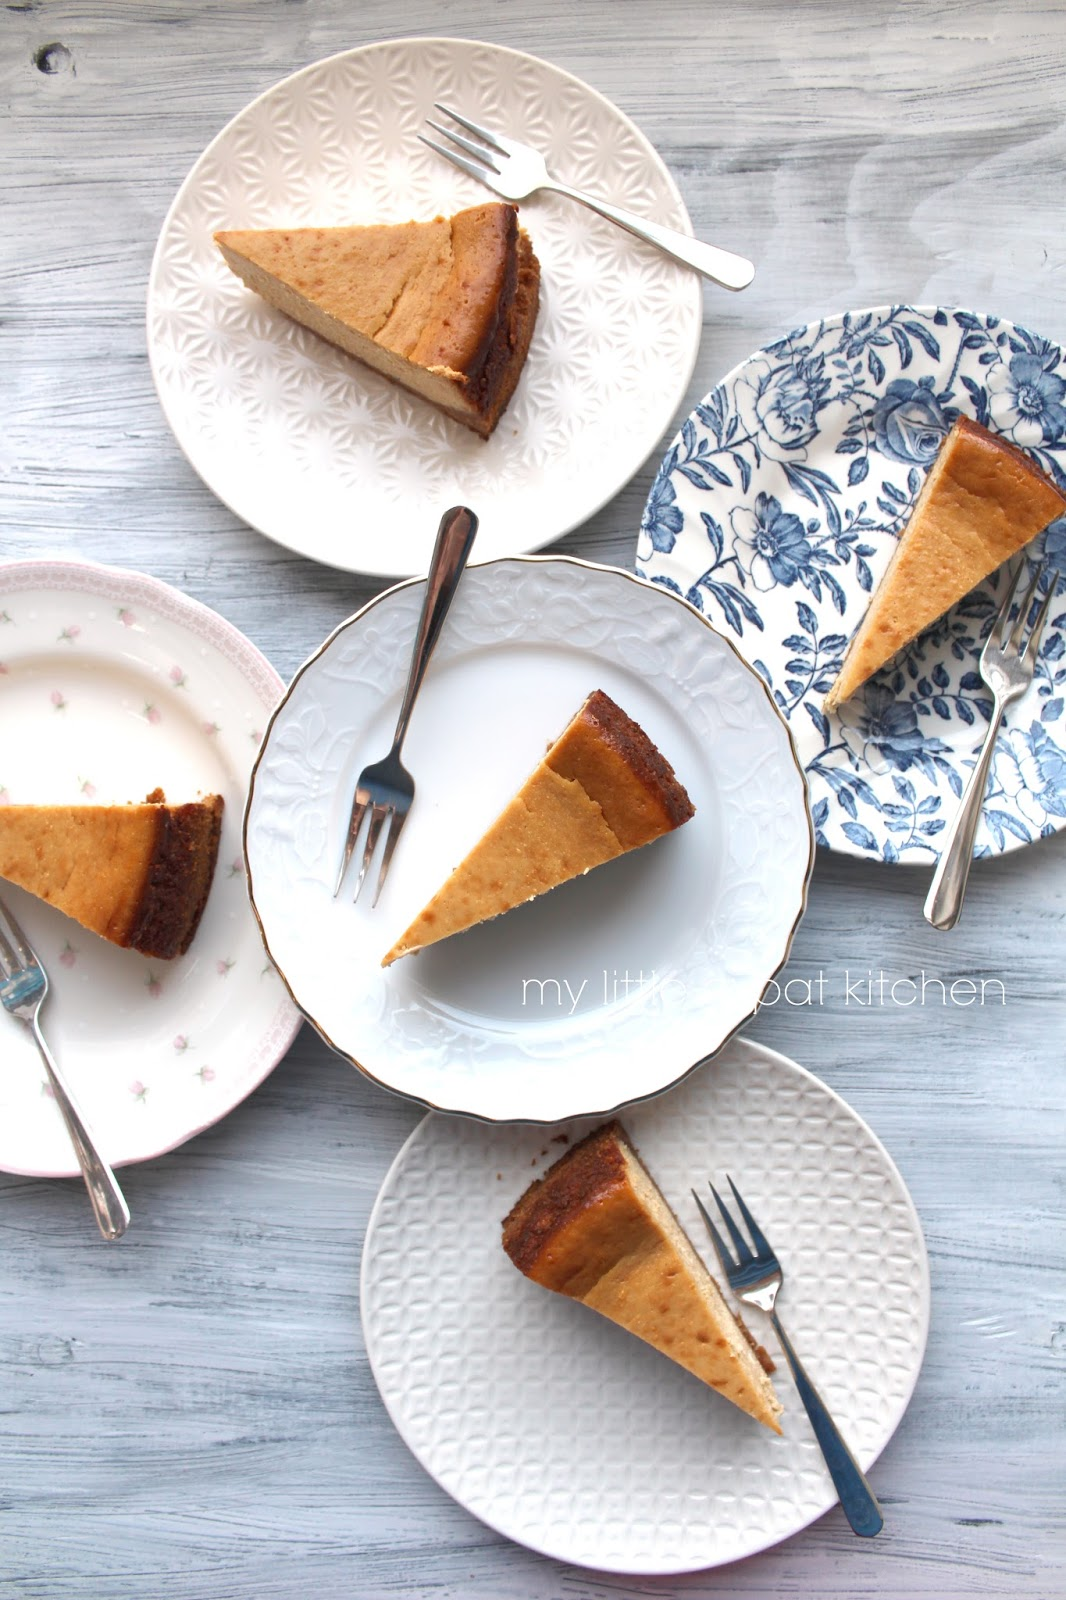 My Little Expat Kitchen: Two awards and one dulce de leche cheesecake